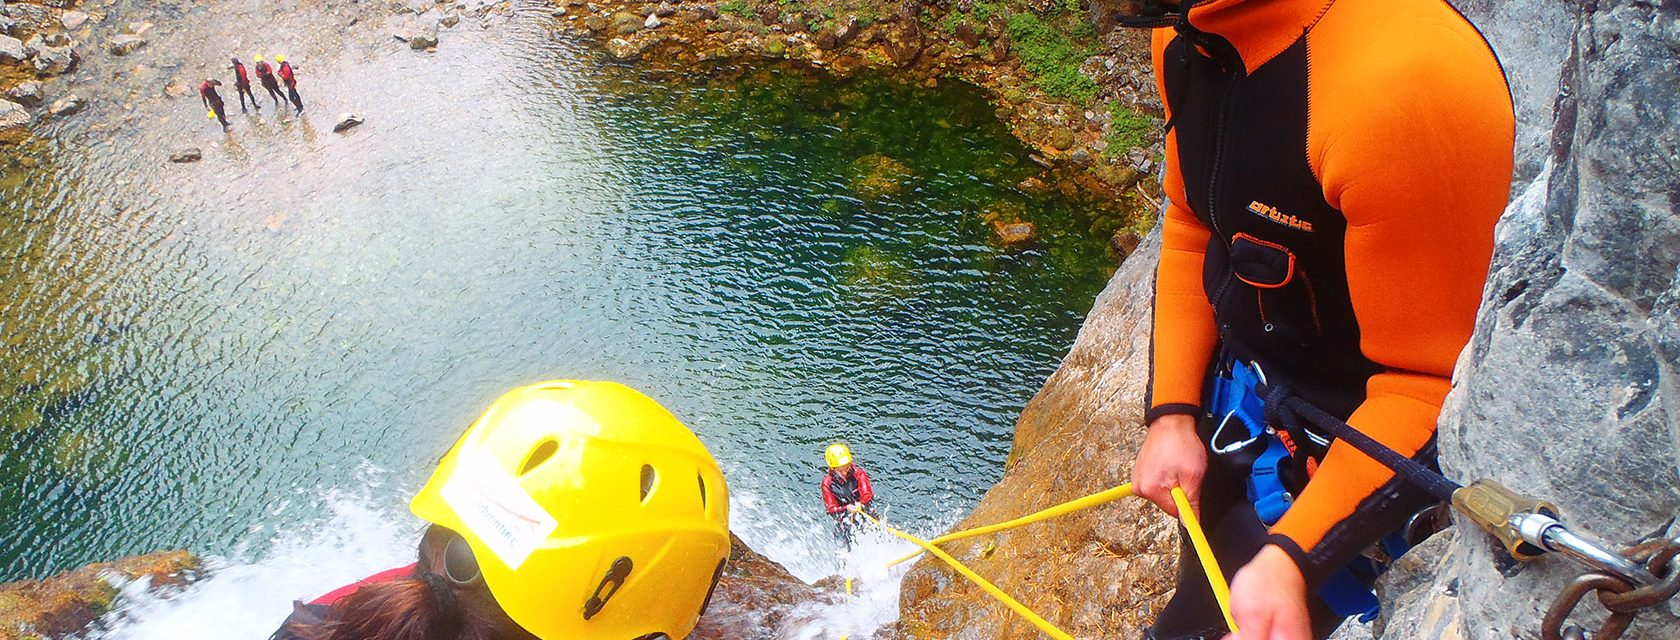 Canyoning Abseilen 3